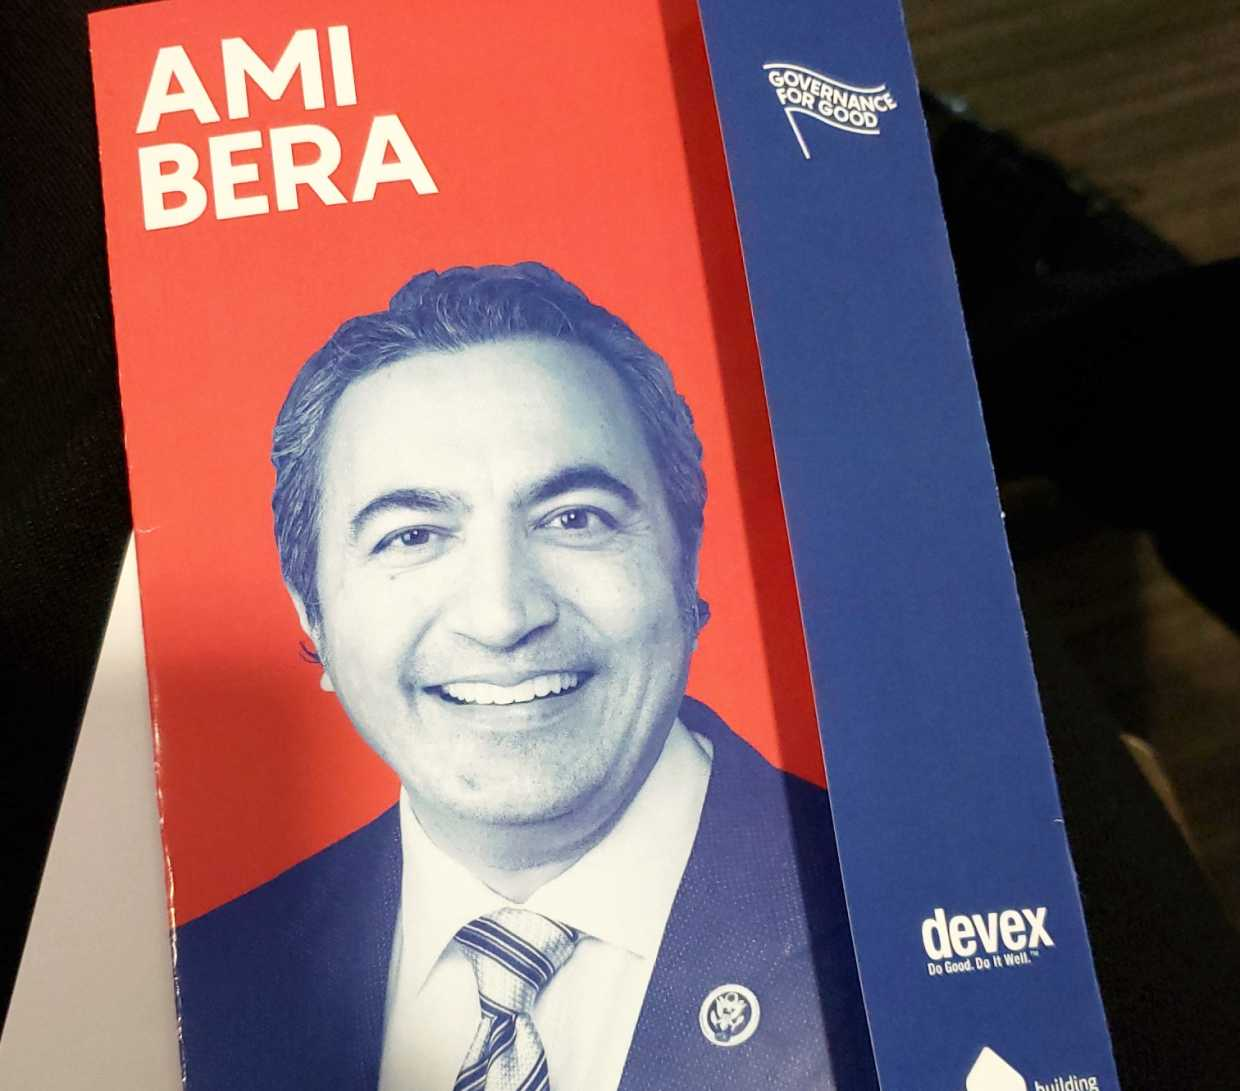 Event flyer with Ami Bera's image